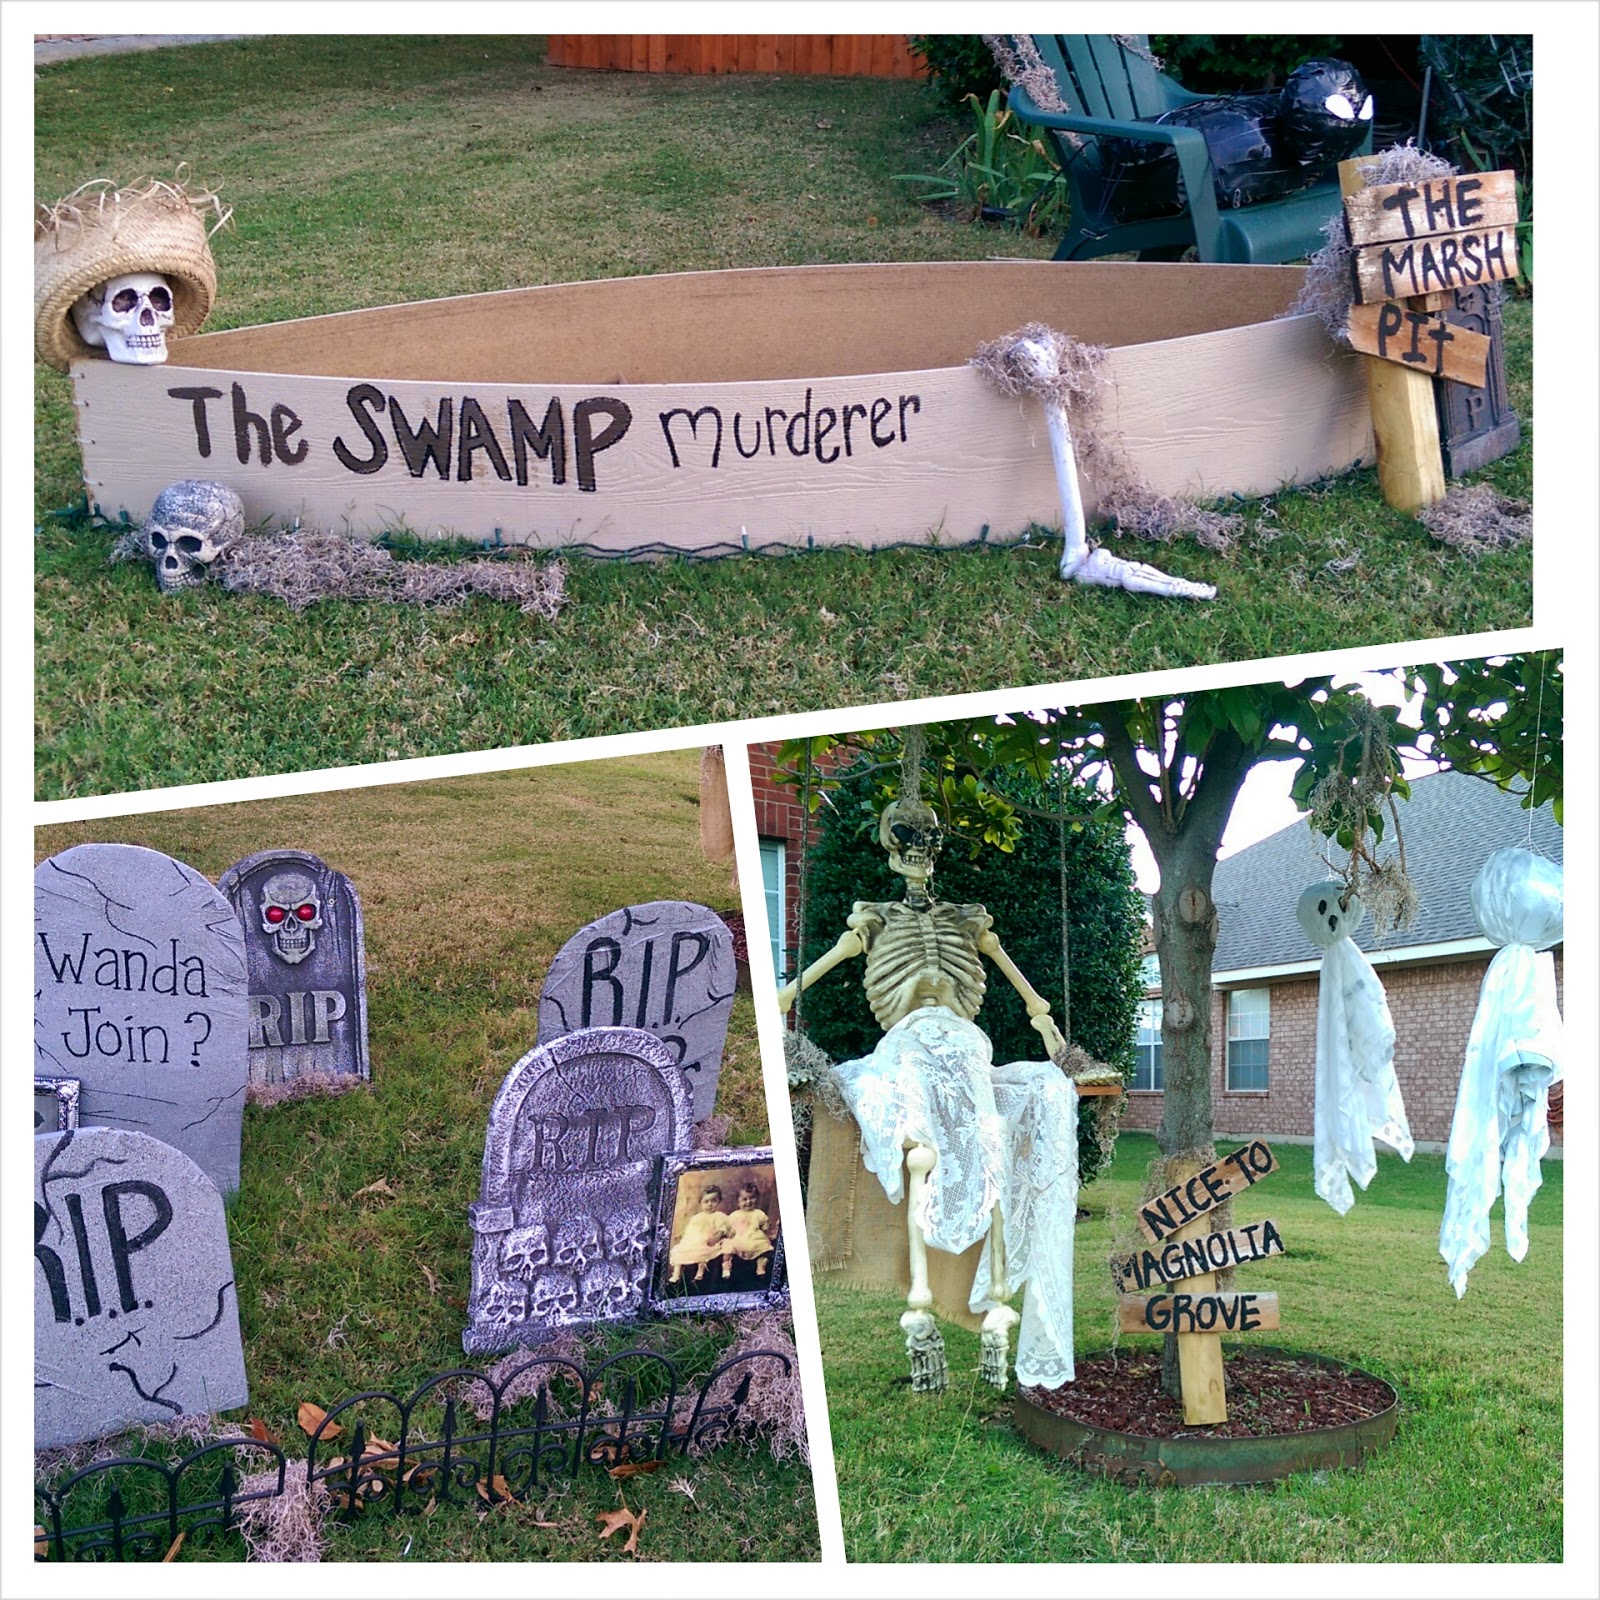 Halloween yard decorations diy - Diy Halloween Decorations Cajun Bayou Swamp Theme Yard Decorations